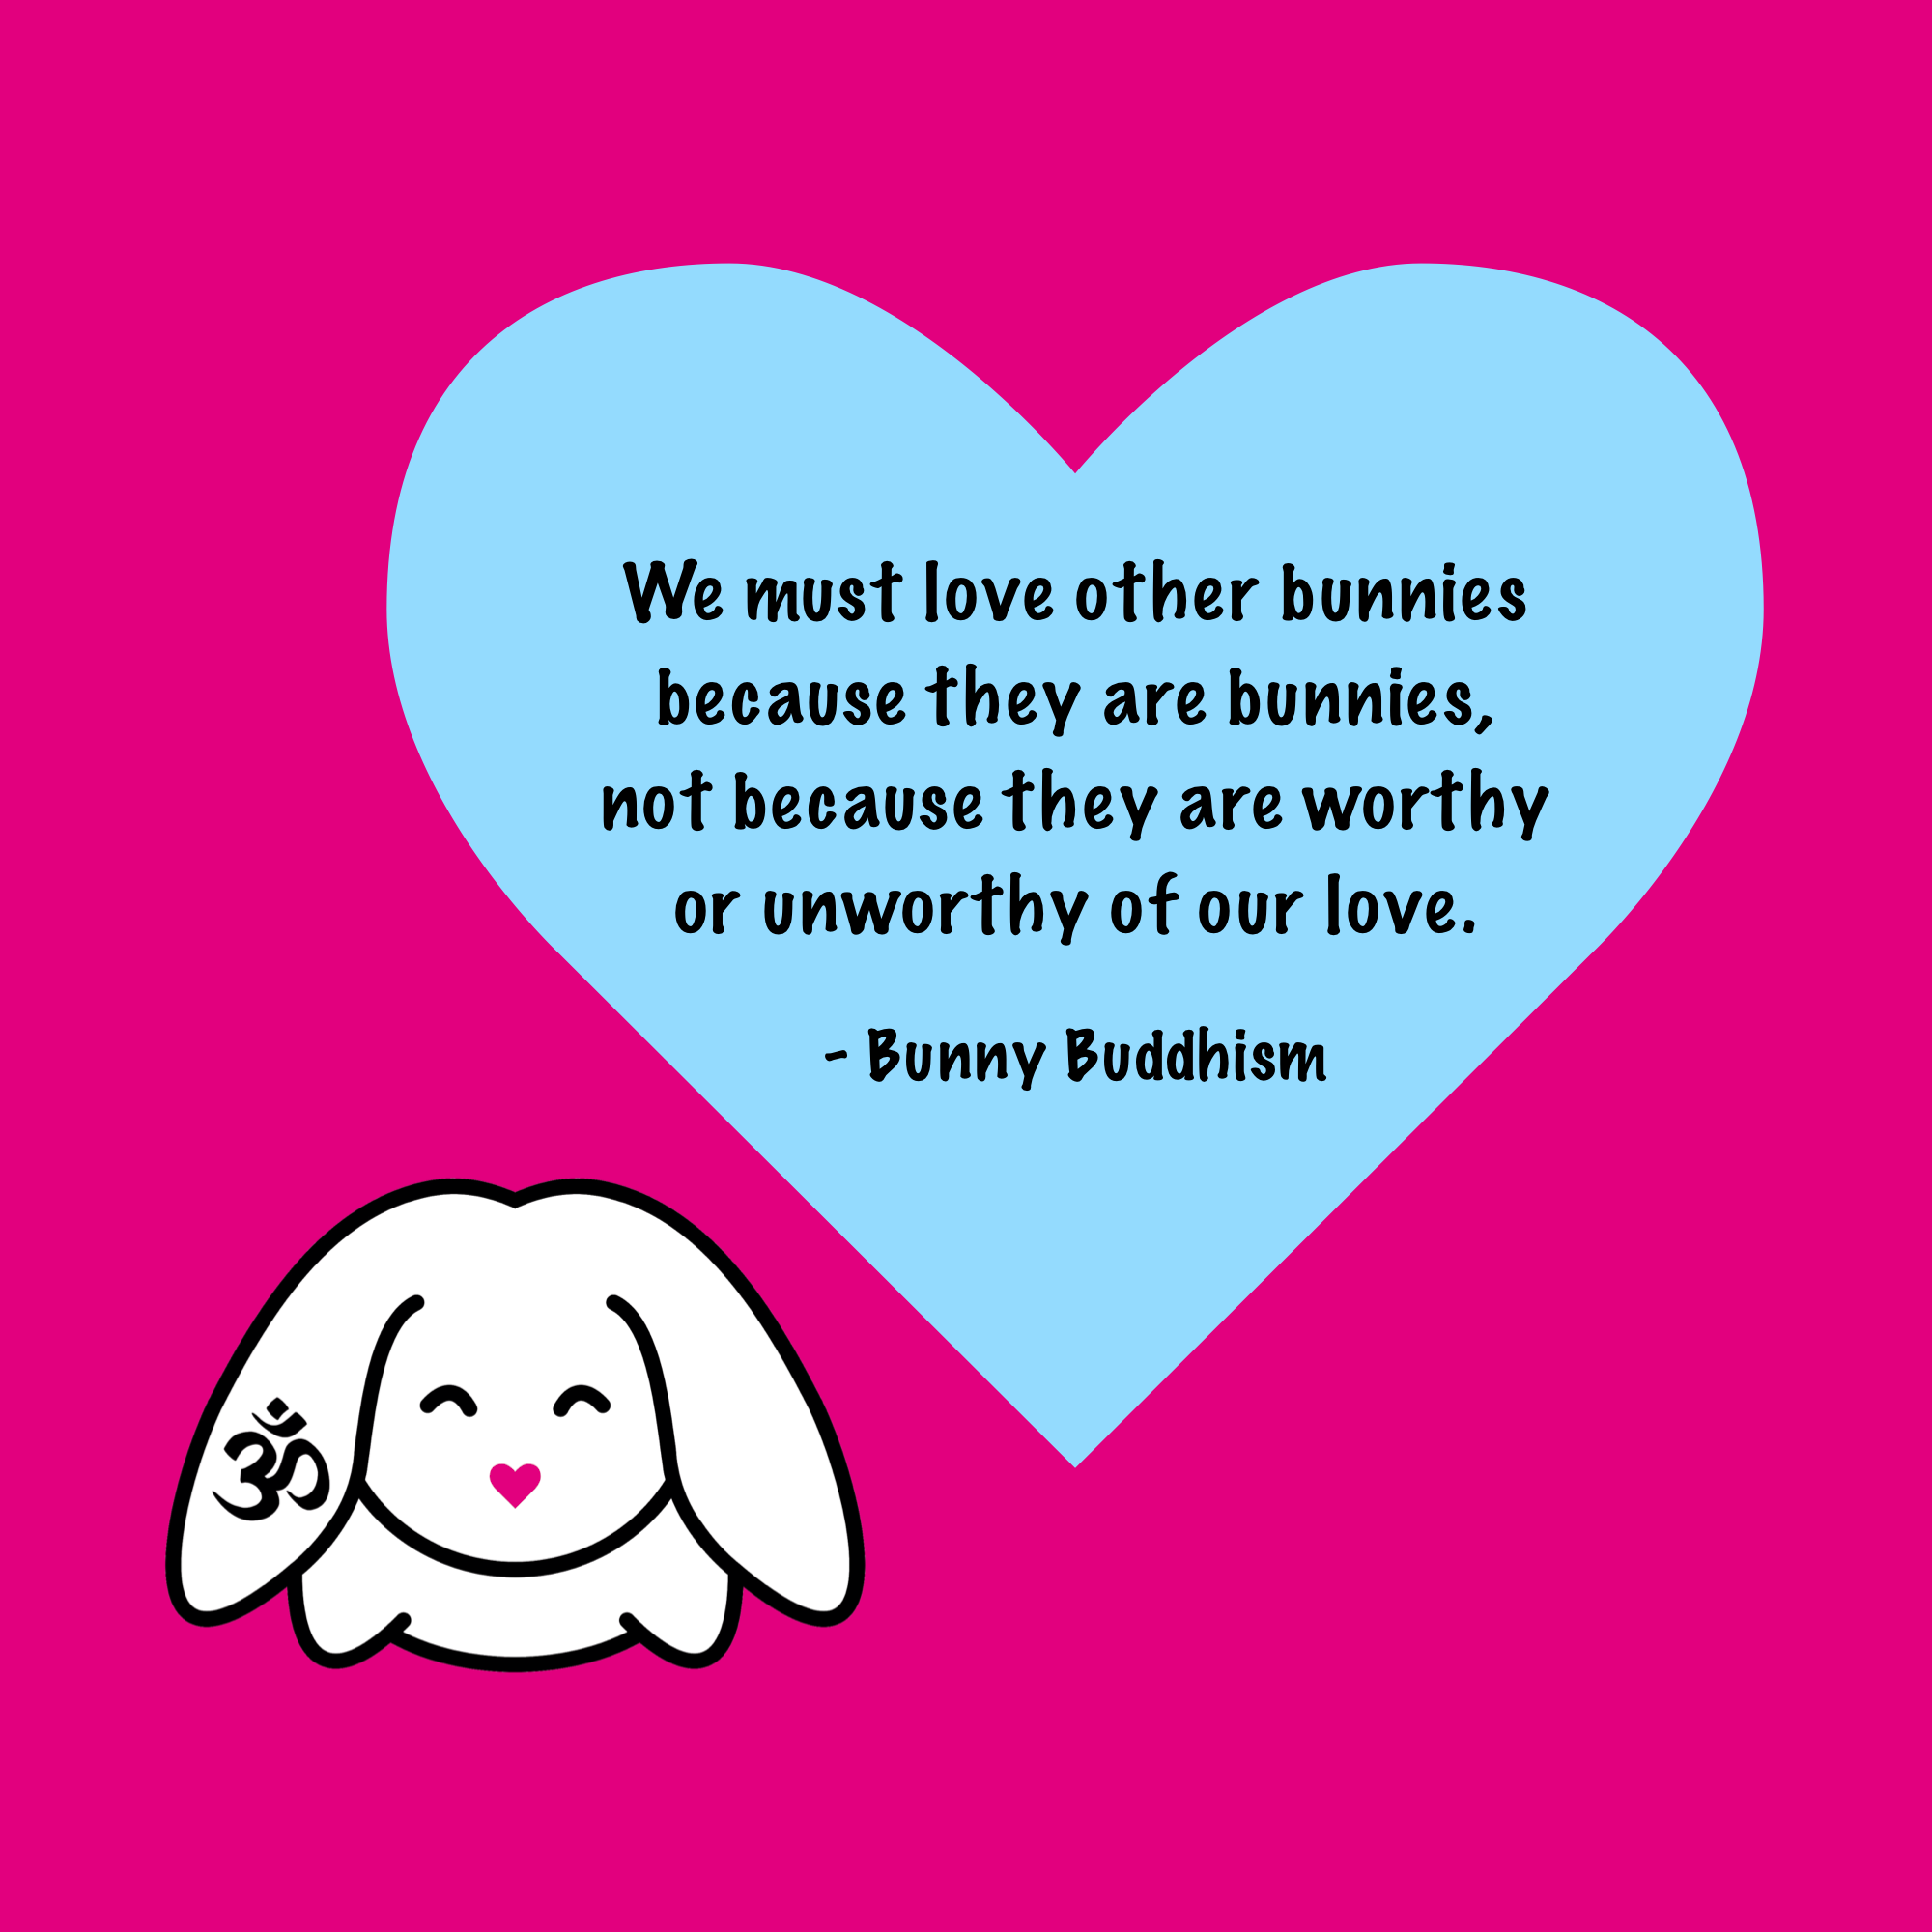 Love Obsession Quotes Love All Bunnies  Bunny Wisdom  Pinterest  Bunny Rabbit And